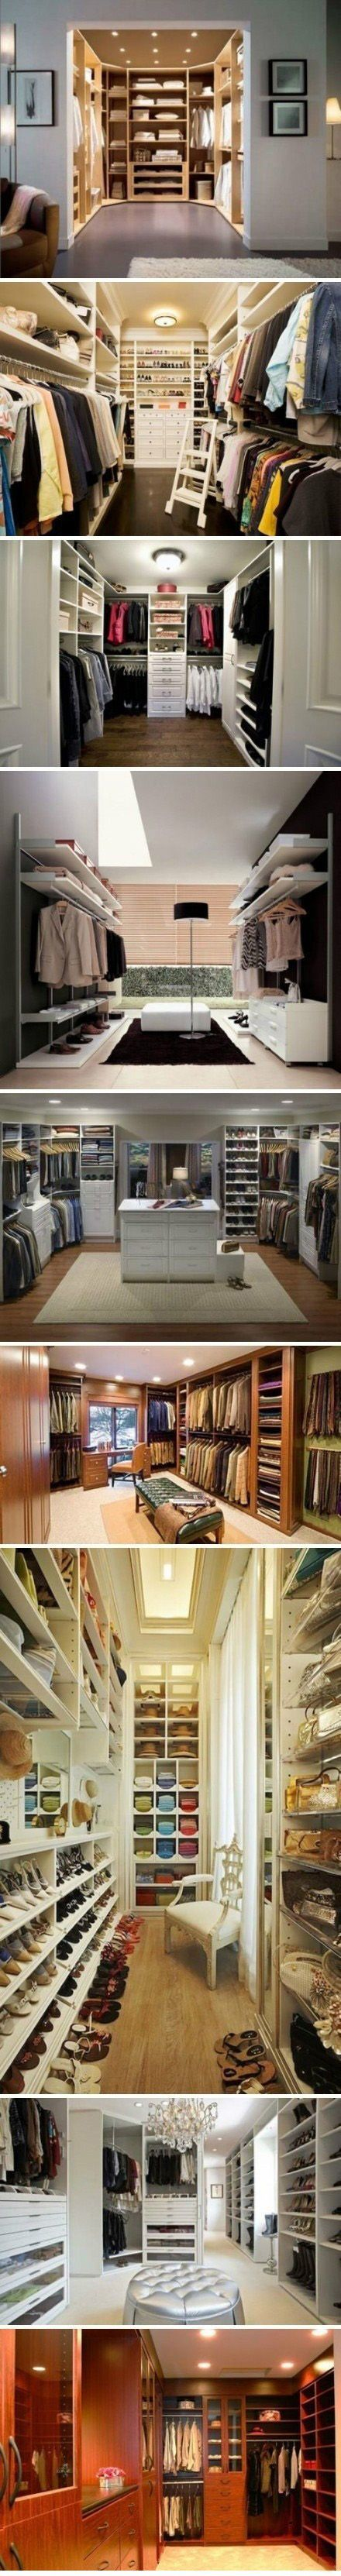 Walk-in closets! Hey, a girl can dream!